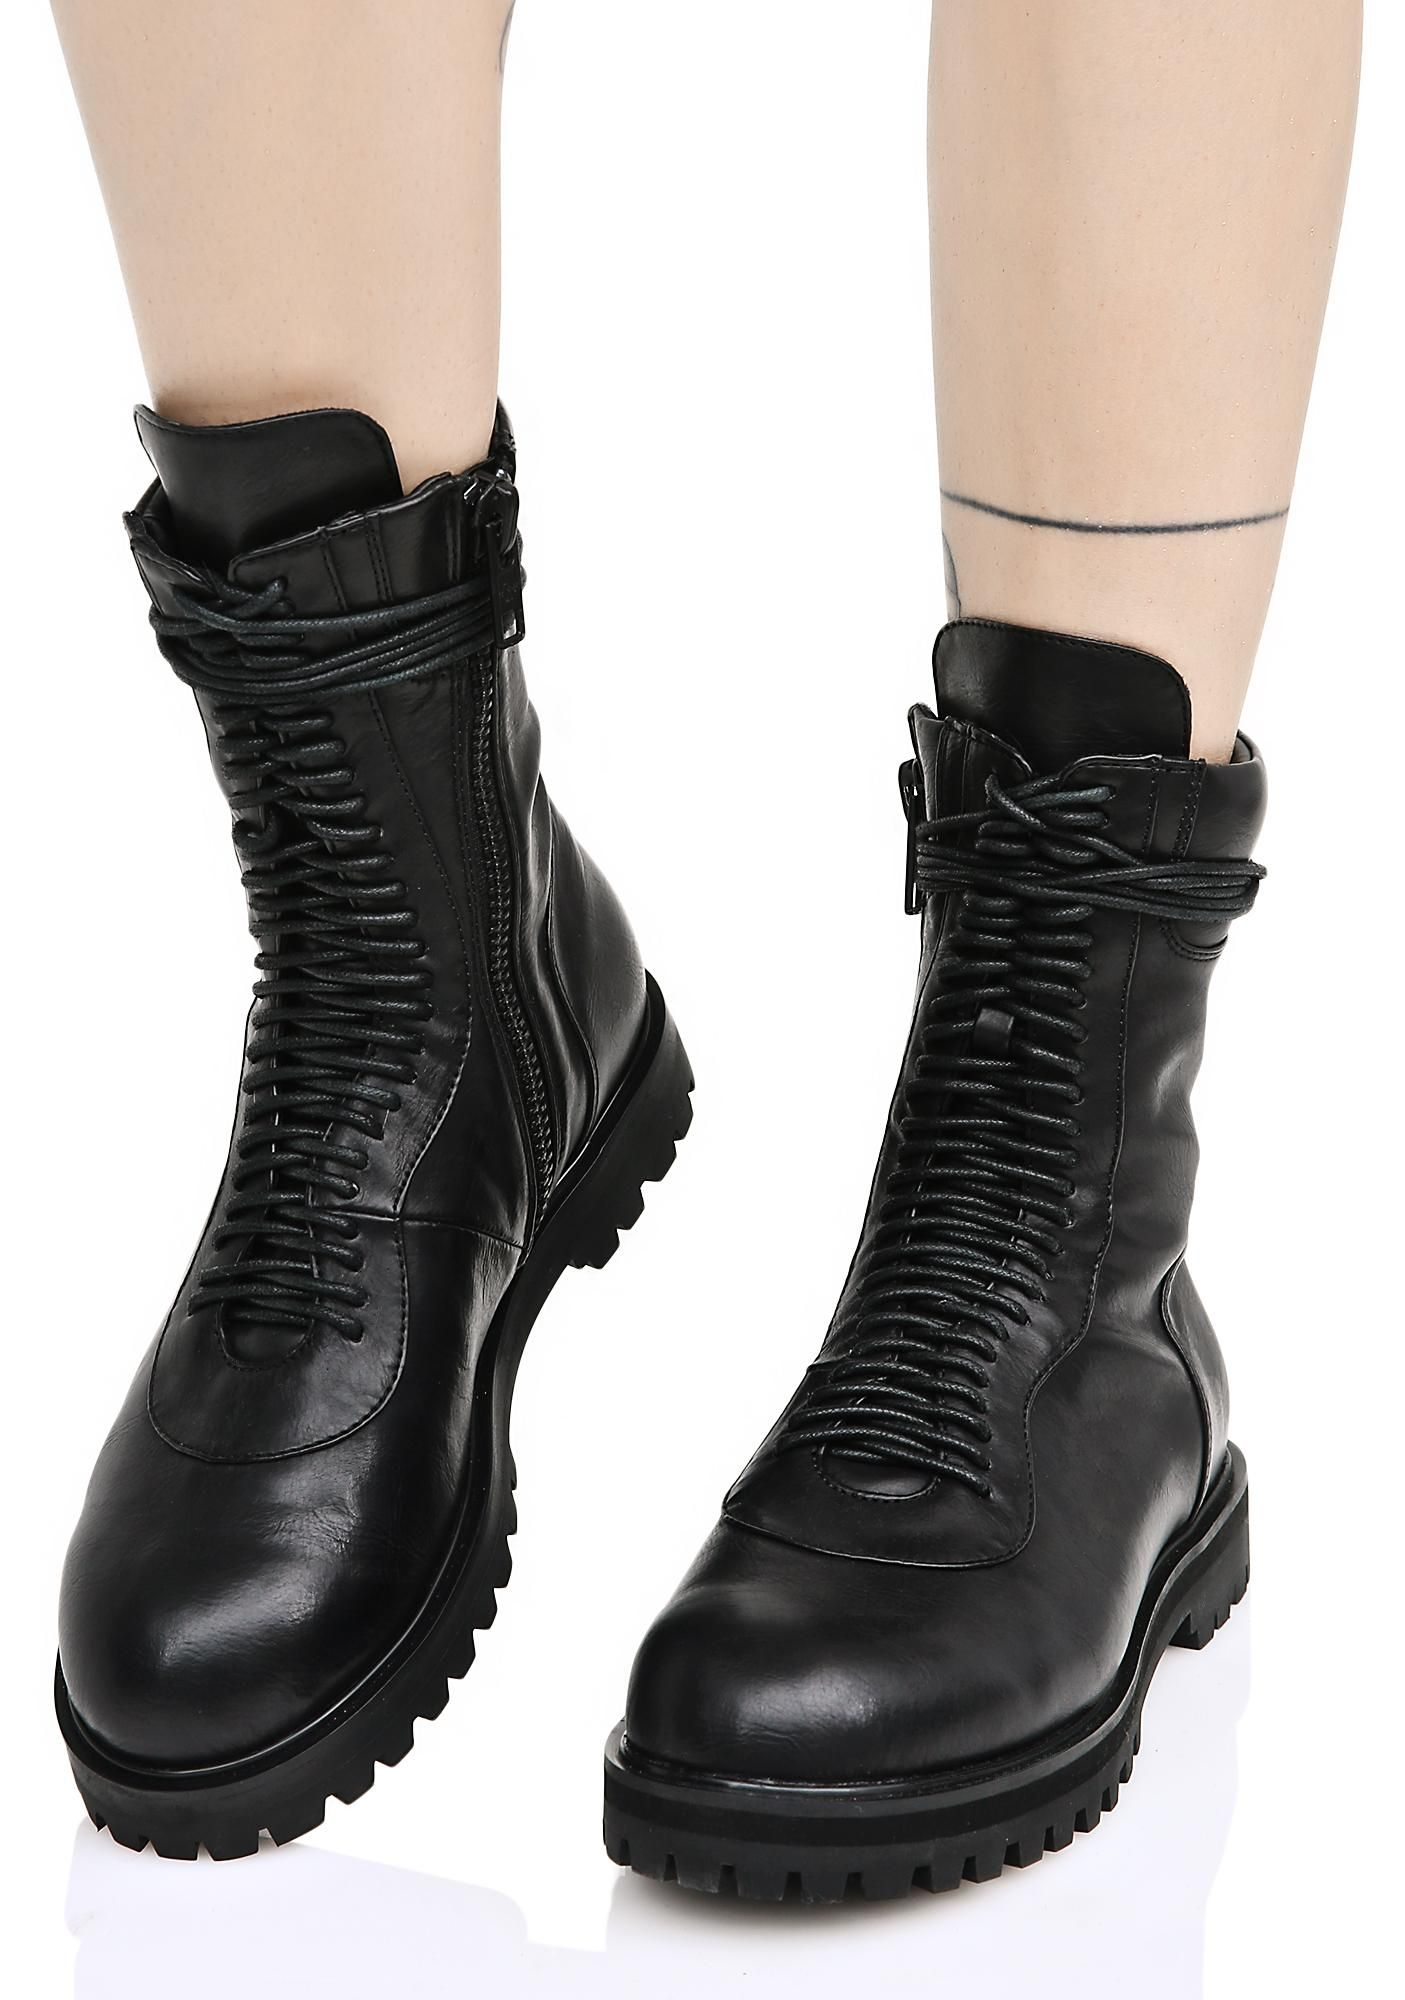 Blackout Boots | Current mood and Legs open